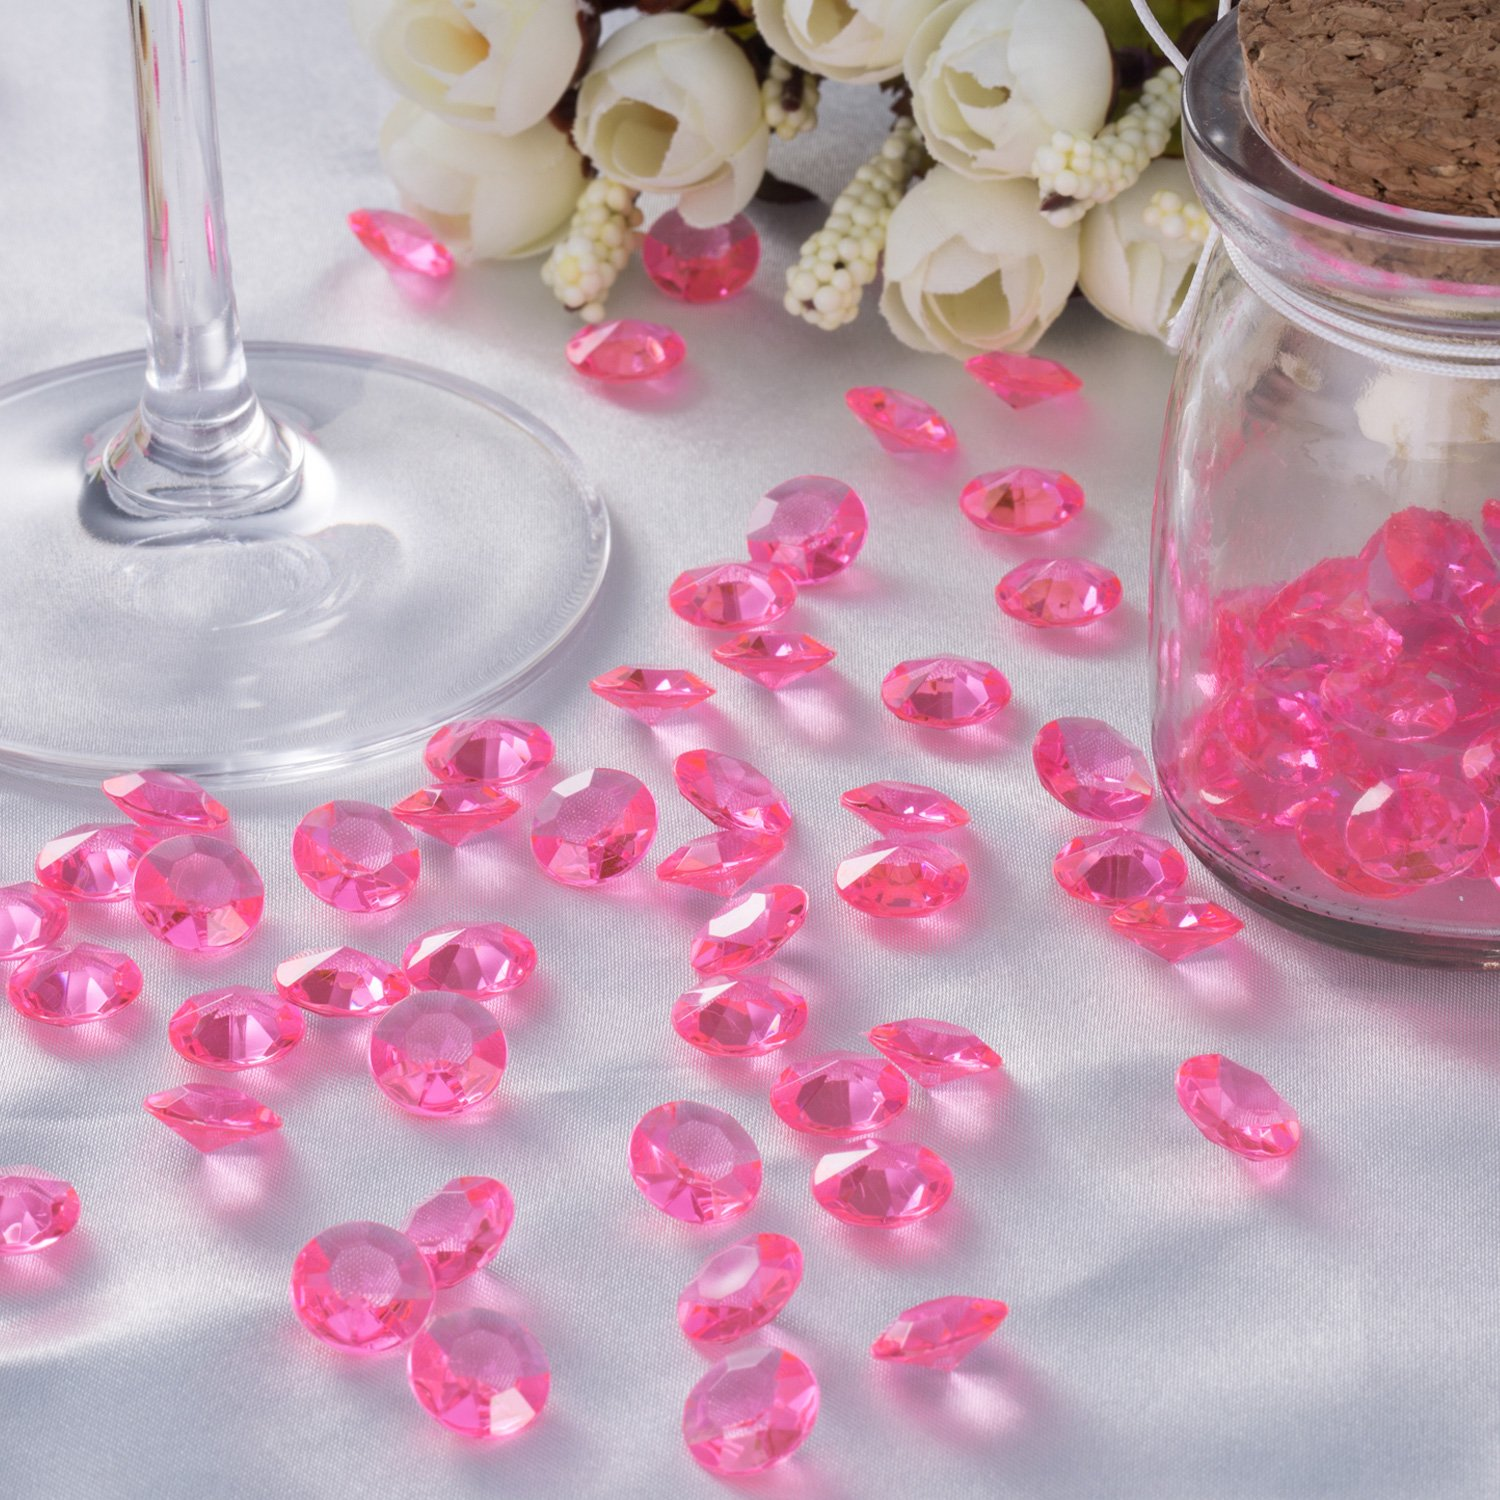 12 mm Acrylic Diamond Scatters 100 Pack for Table Centerpieces ...